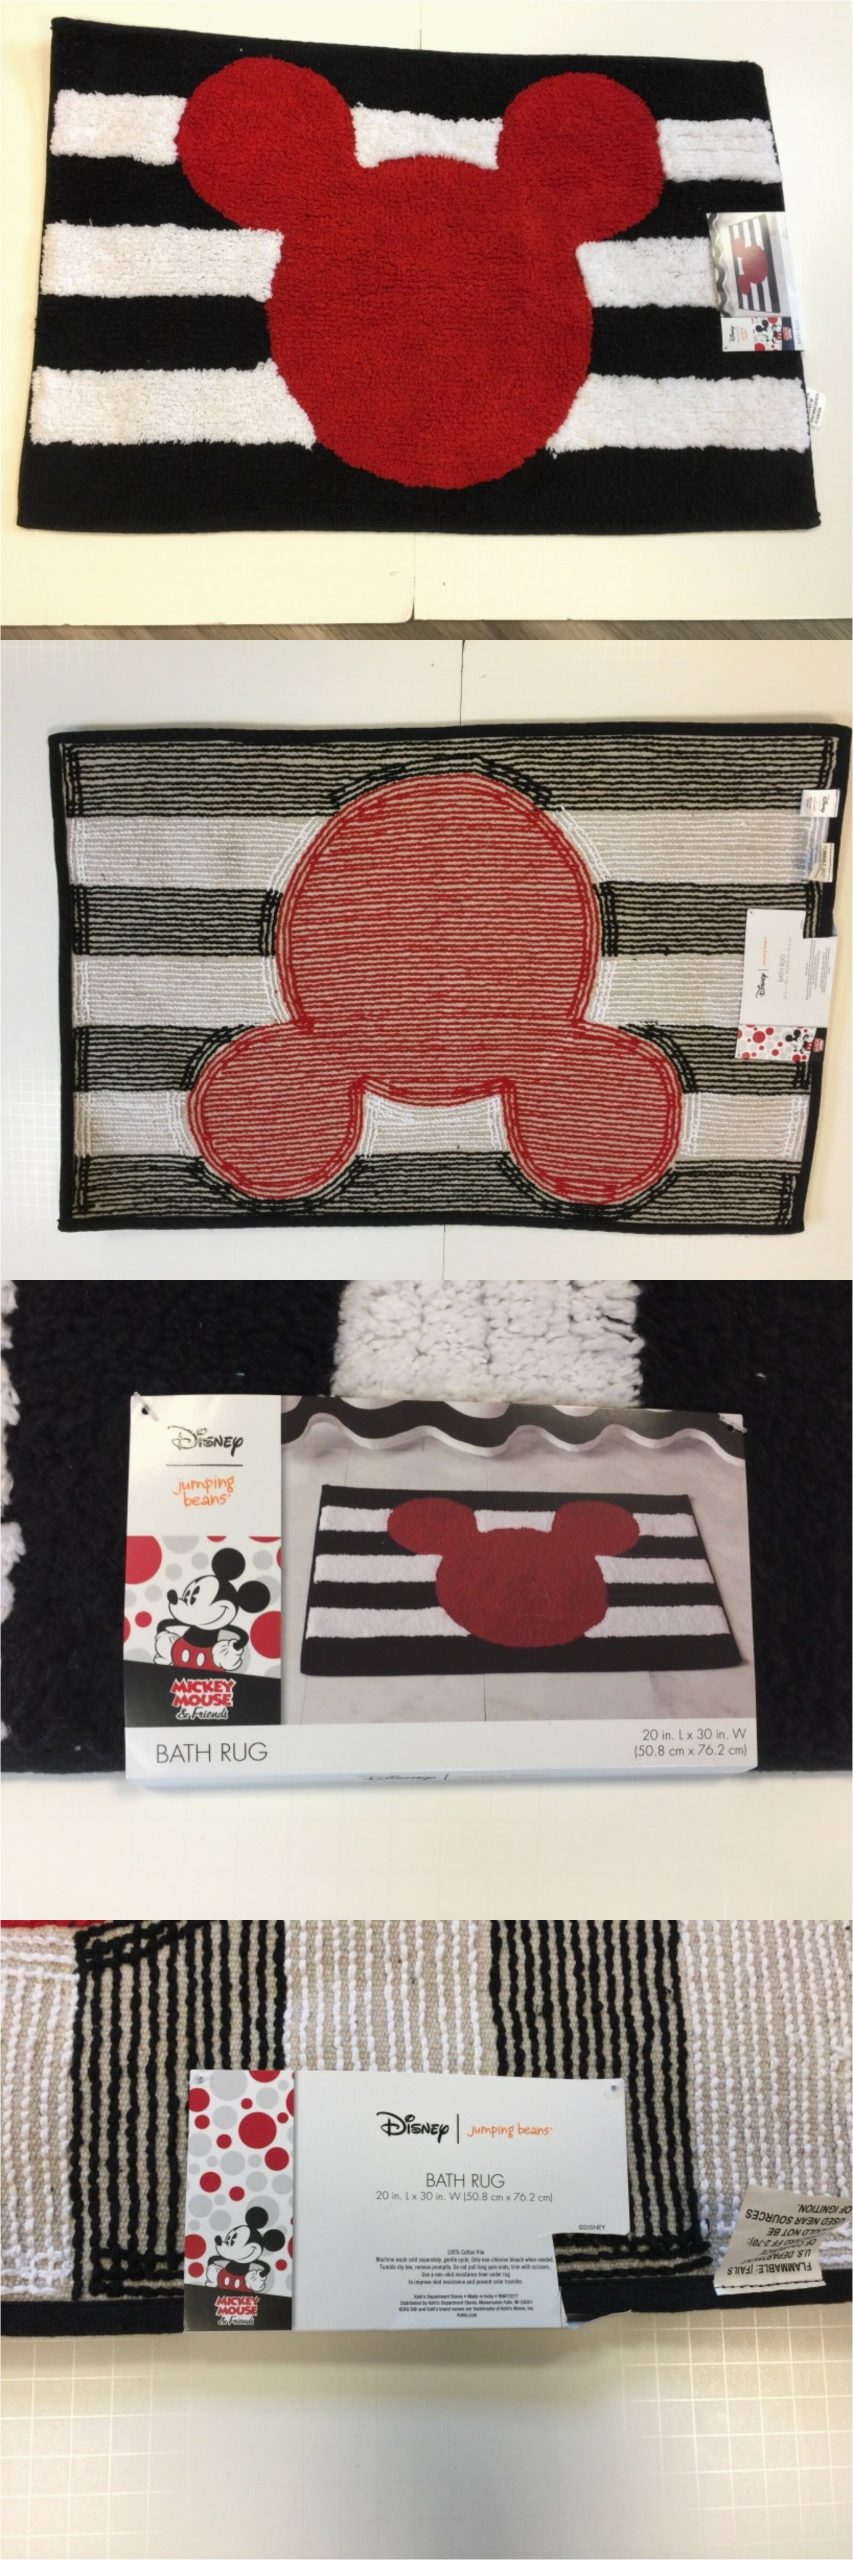 Red and White Bath Rug Bathmats Rugs and toilet Covers Disney Mickey Mouse